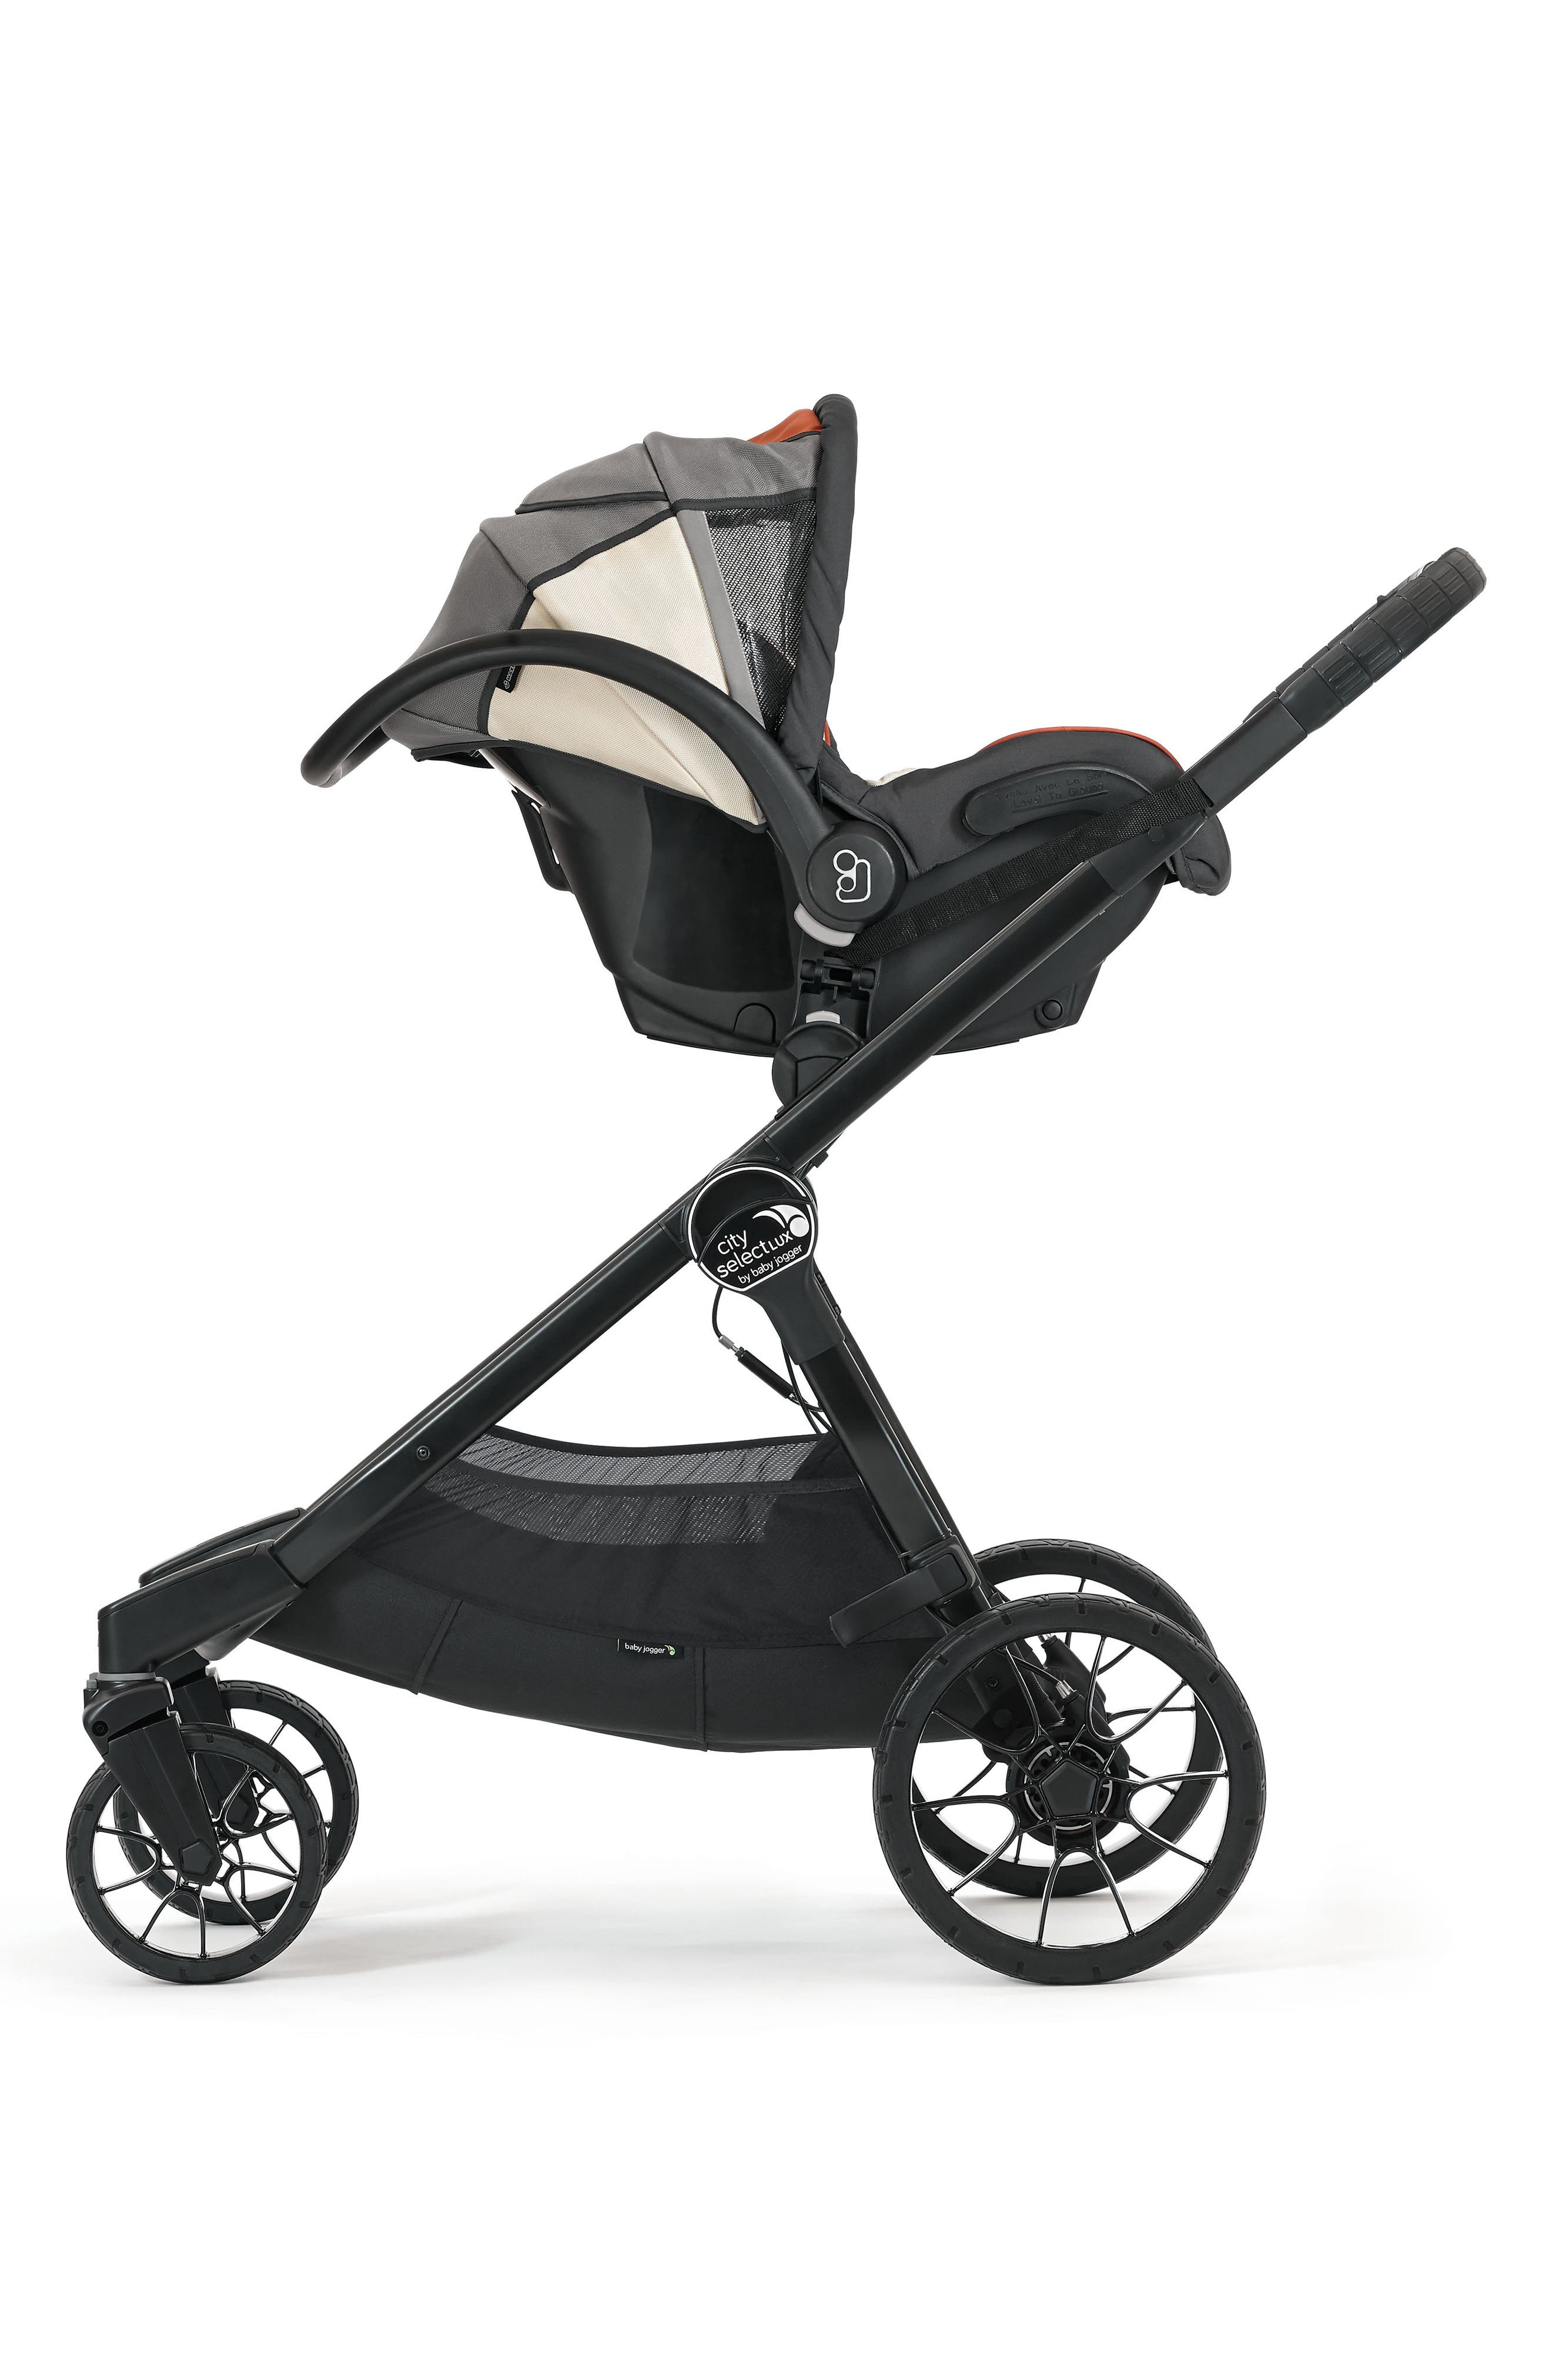 City Select<sup>®</sup>/City Premier<sup>®</sup> Stroller to Cybex, nuna & Maxi-Cosi<sup>®</sup> Car Seat Adapter,                             Main thumbnail 1, color,                             001